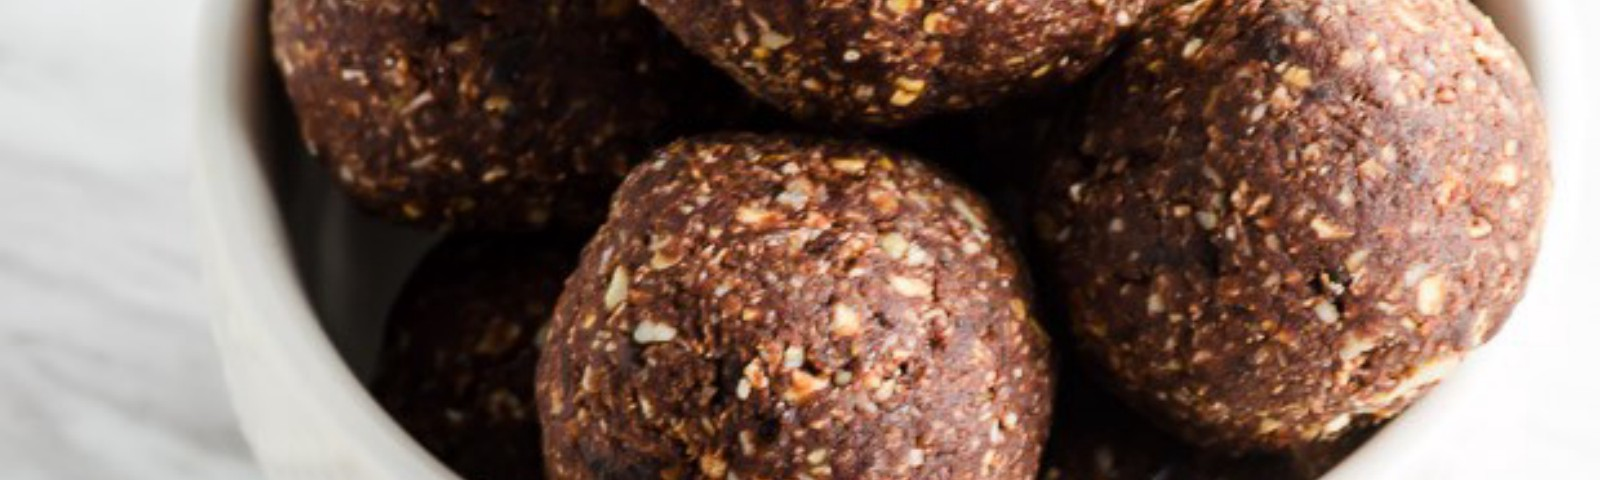 Cocoa Nut Energy Balls - great as a pre or post workout snack, after school snack or afternoon pick me up. Vegan